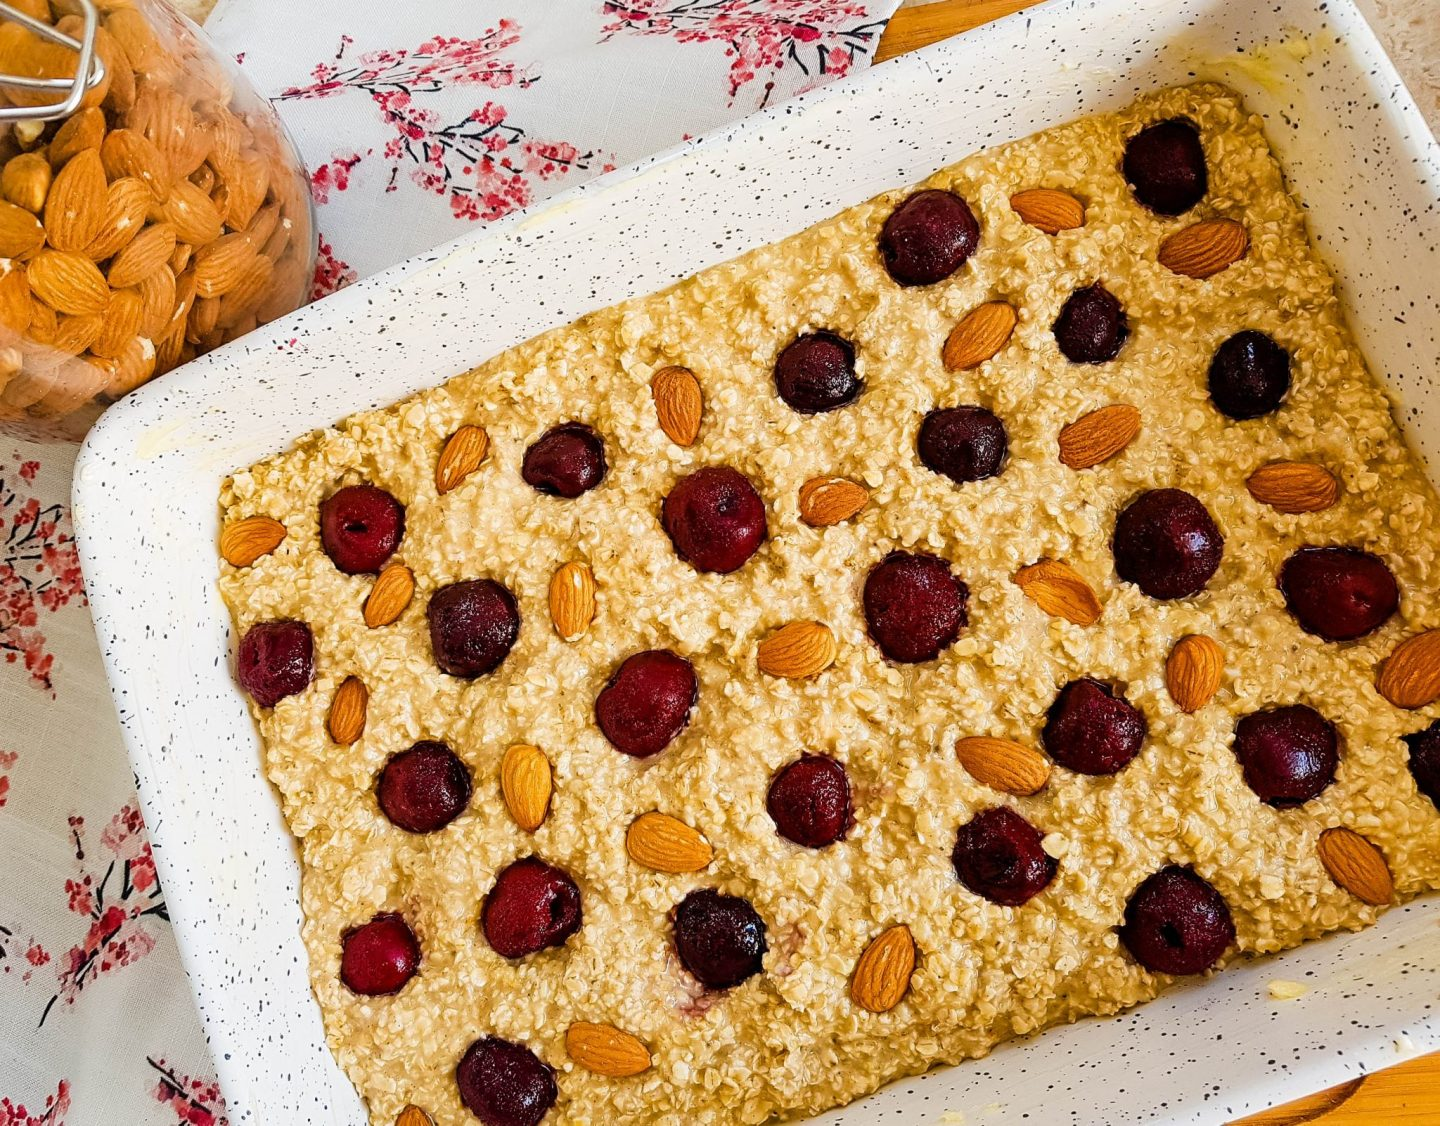 cherry almond protein baked oatmeal before baking